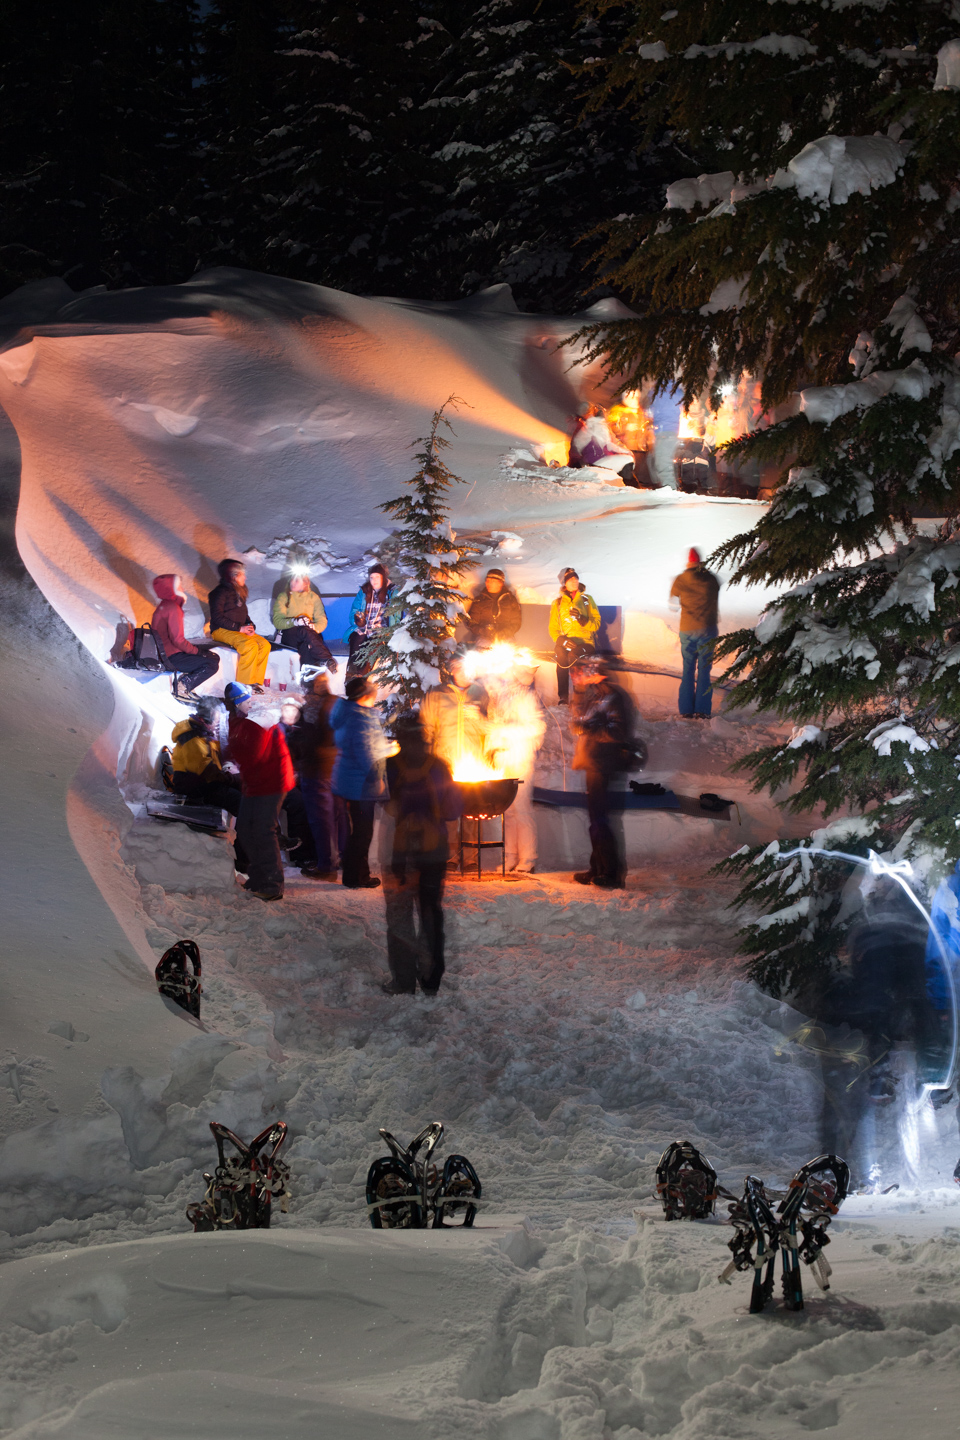 (A): Bonfire on the Snow Snowshoe with your Wanderlust Tours guide to a quiet spot in the snowy forest. Bask at a glowing bonfire in an amazing hand-carved amphitheater in the snow! Relax around the fire with newly made friends enjoying delectable desserts and hot drinks. Our outstanding naturalist guides will share fun facts about the forest, its animal life and the night sky!